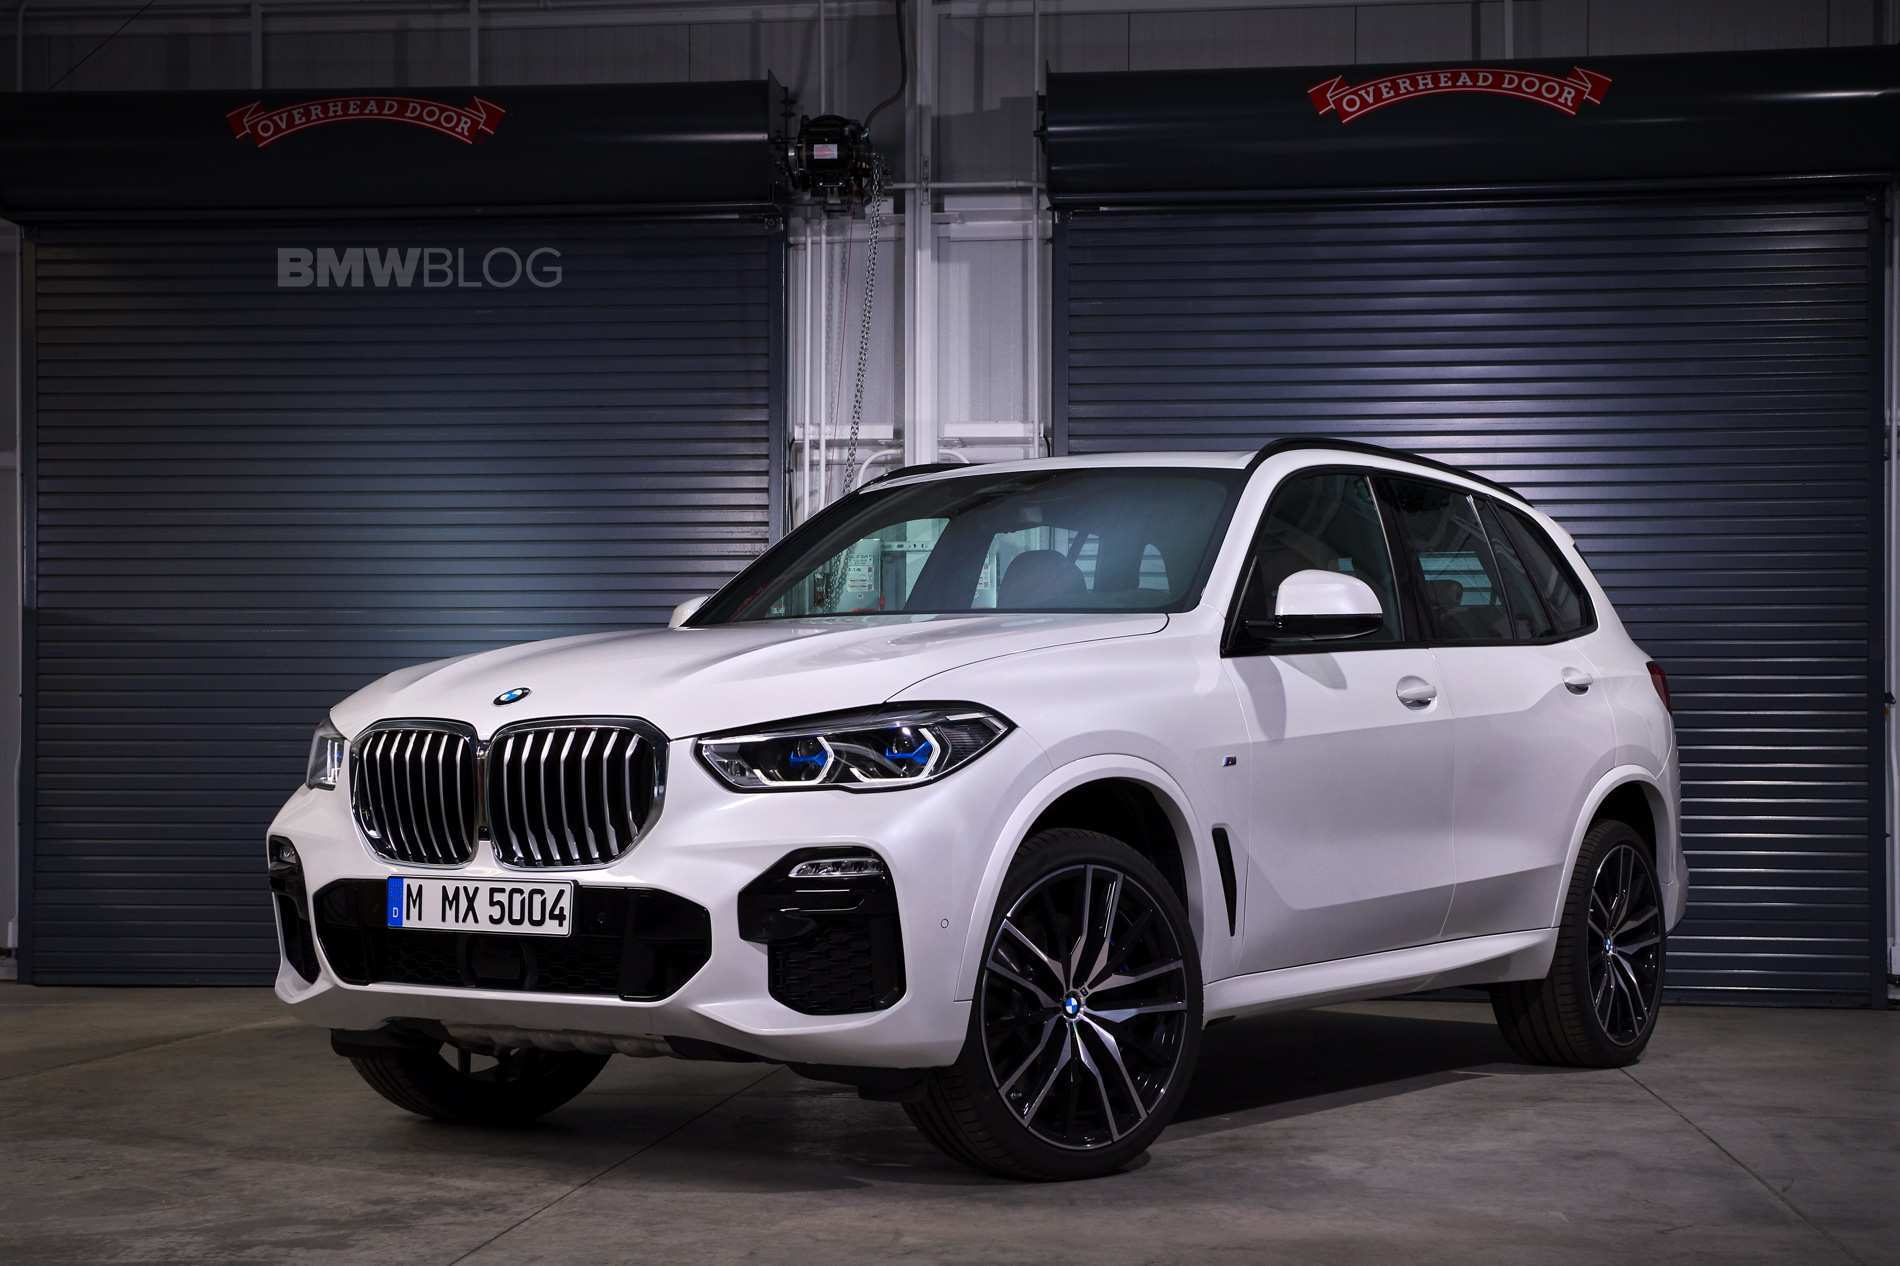 25 Best Review When Is The Bmw X5 2019 Release Date Engine Engine for When Is The Bmw X5 2019 Release Date Engine